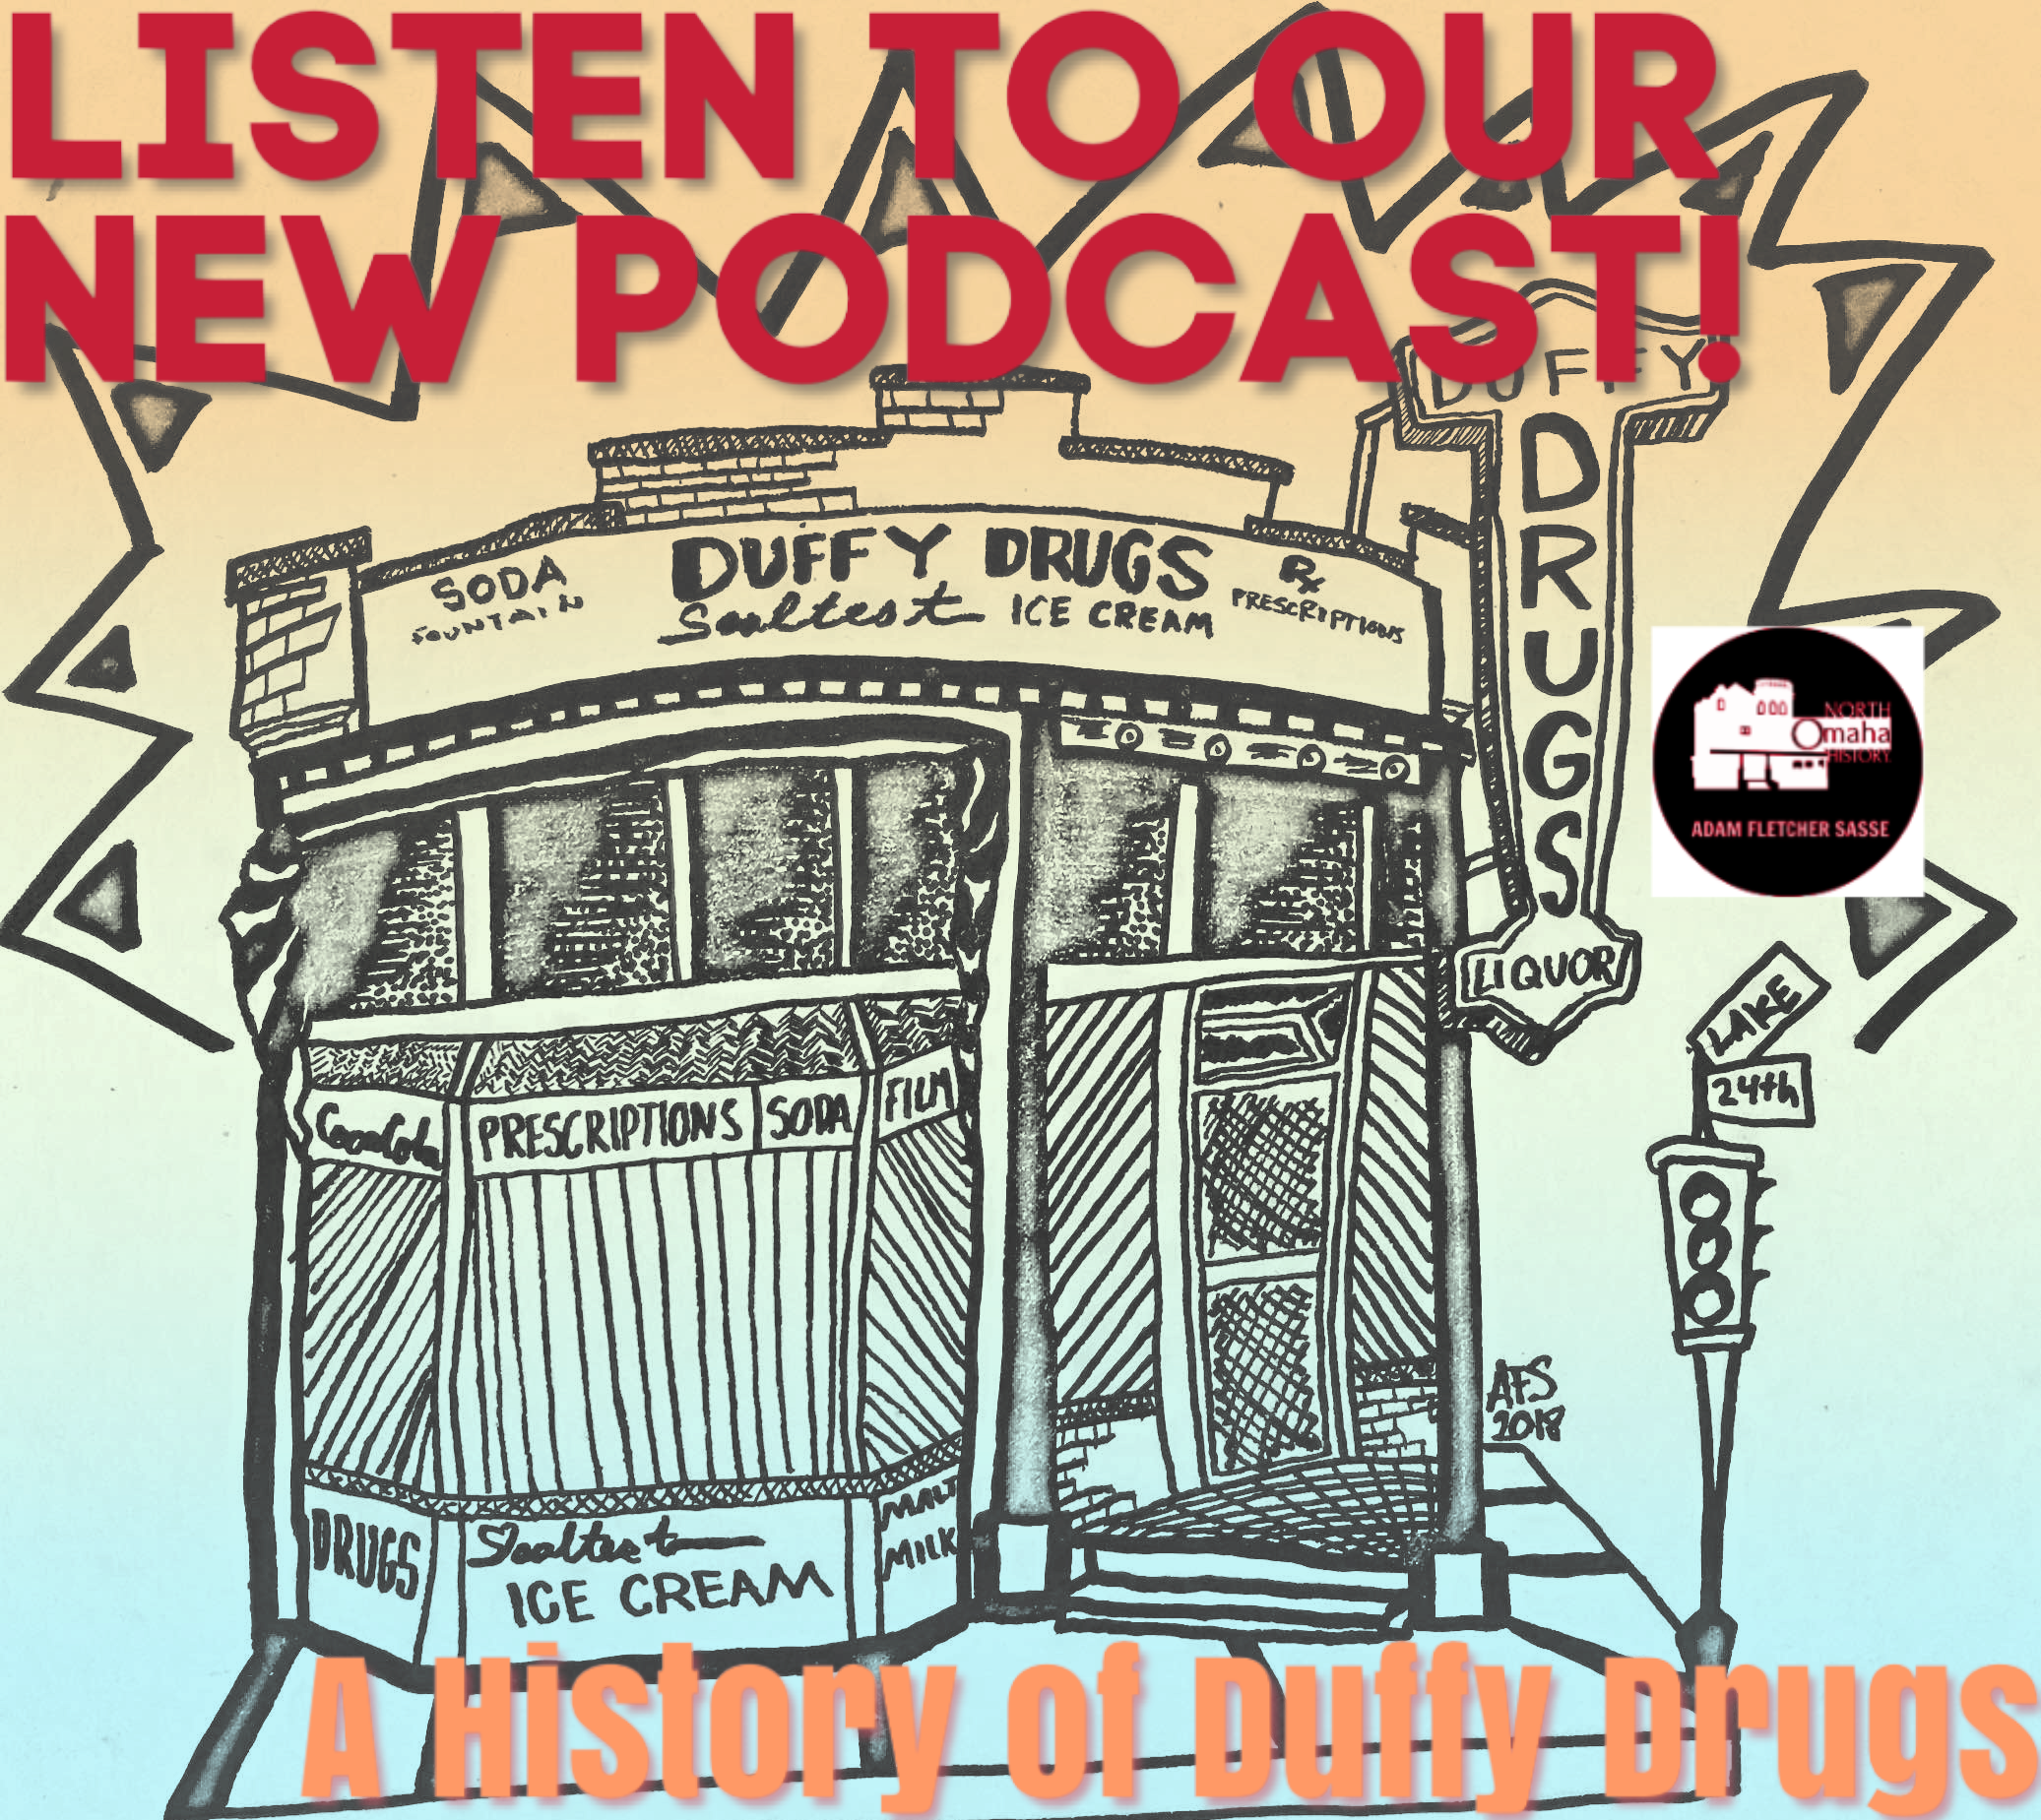 A History of Duffy Drugs Podcast, North Omaha, Nebraska with Adam Fletcher Sasse